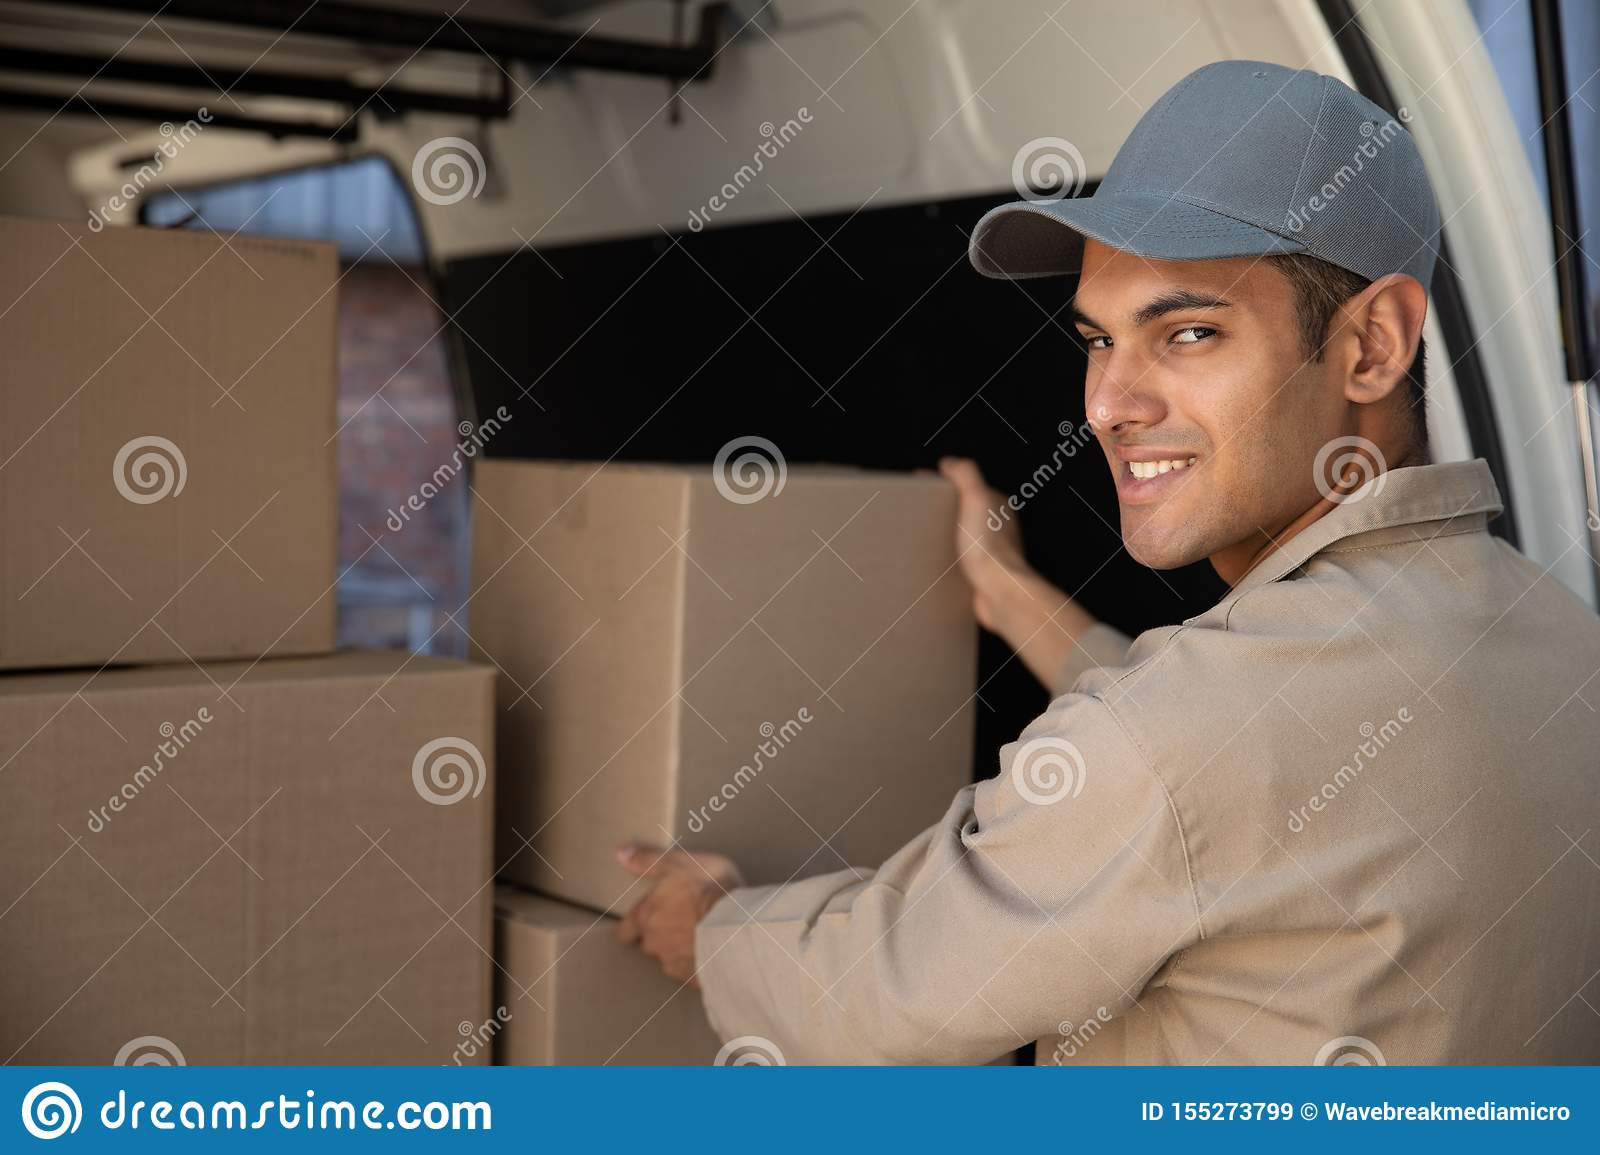 Delivery man unloading cardboard boxes from a van outside the warehouse